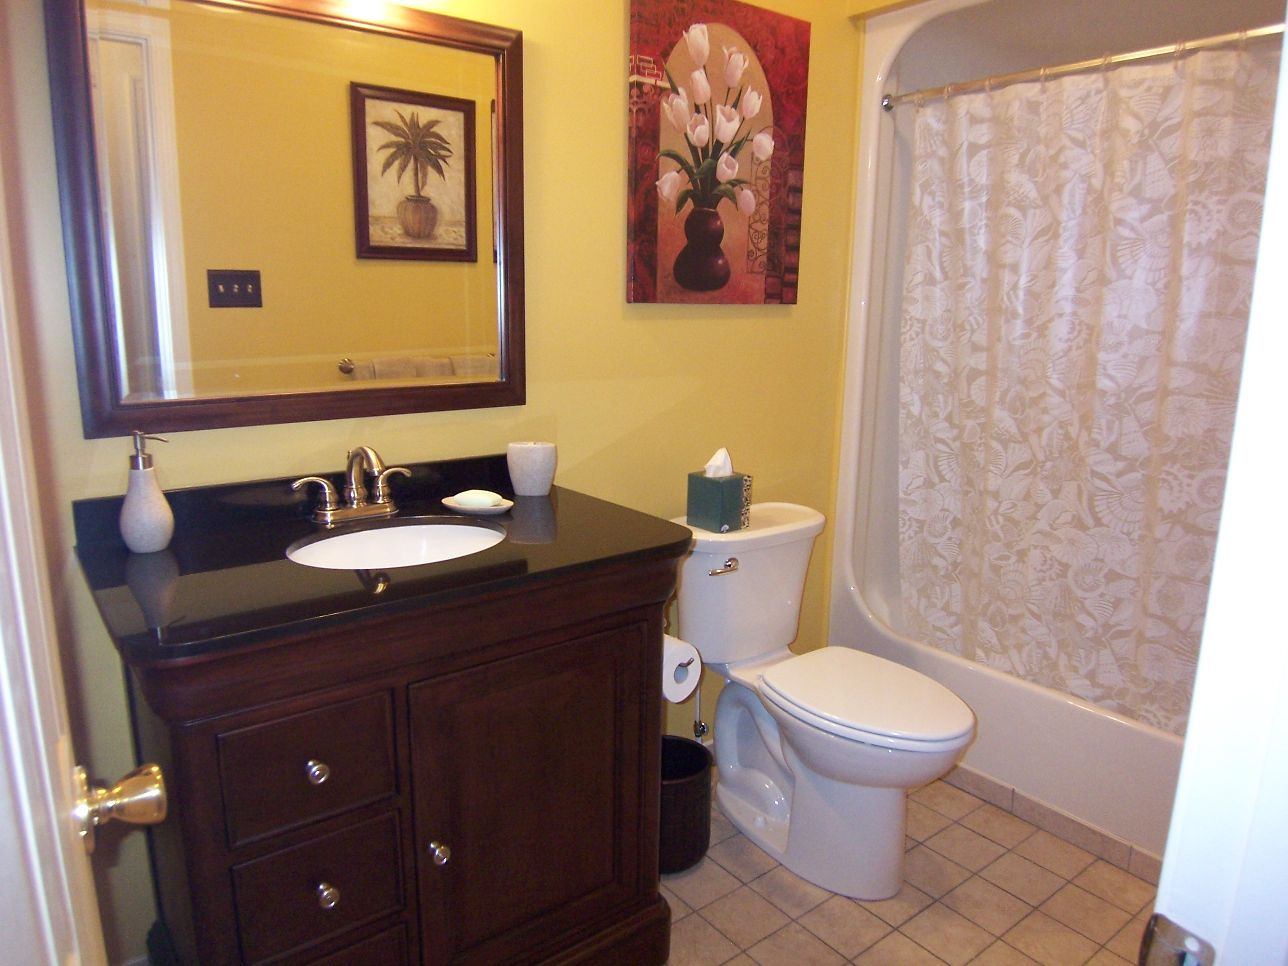 Projects - How to remodel your bathroom yourself ...